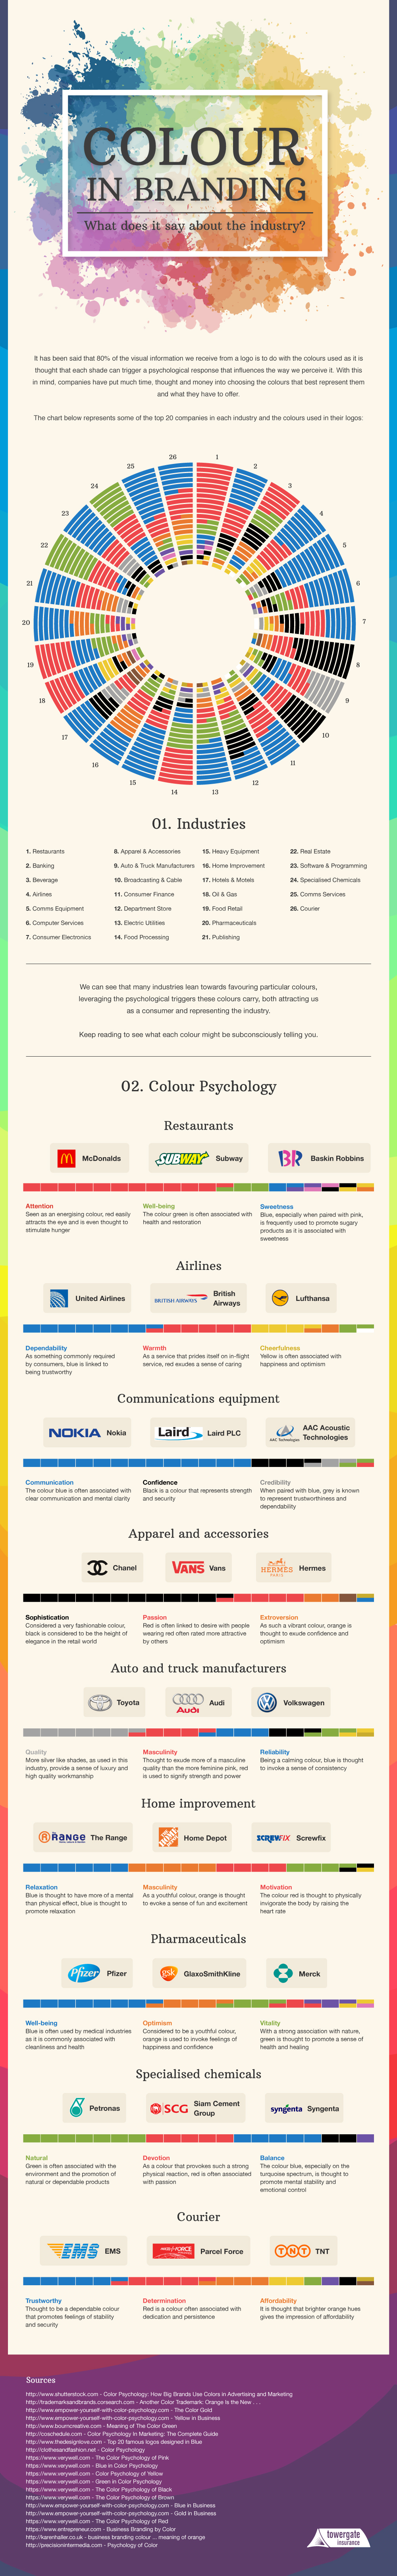 Colour psychology, color in branding